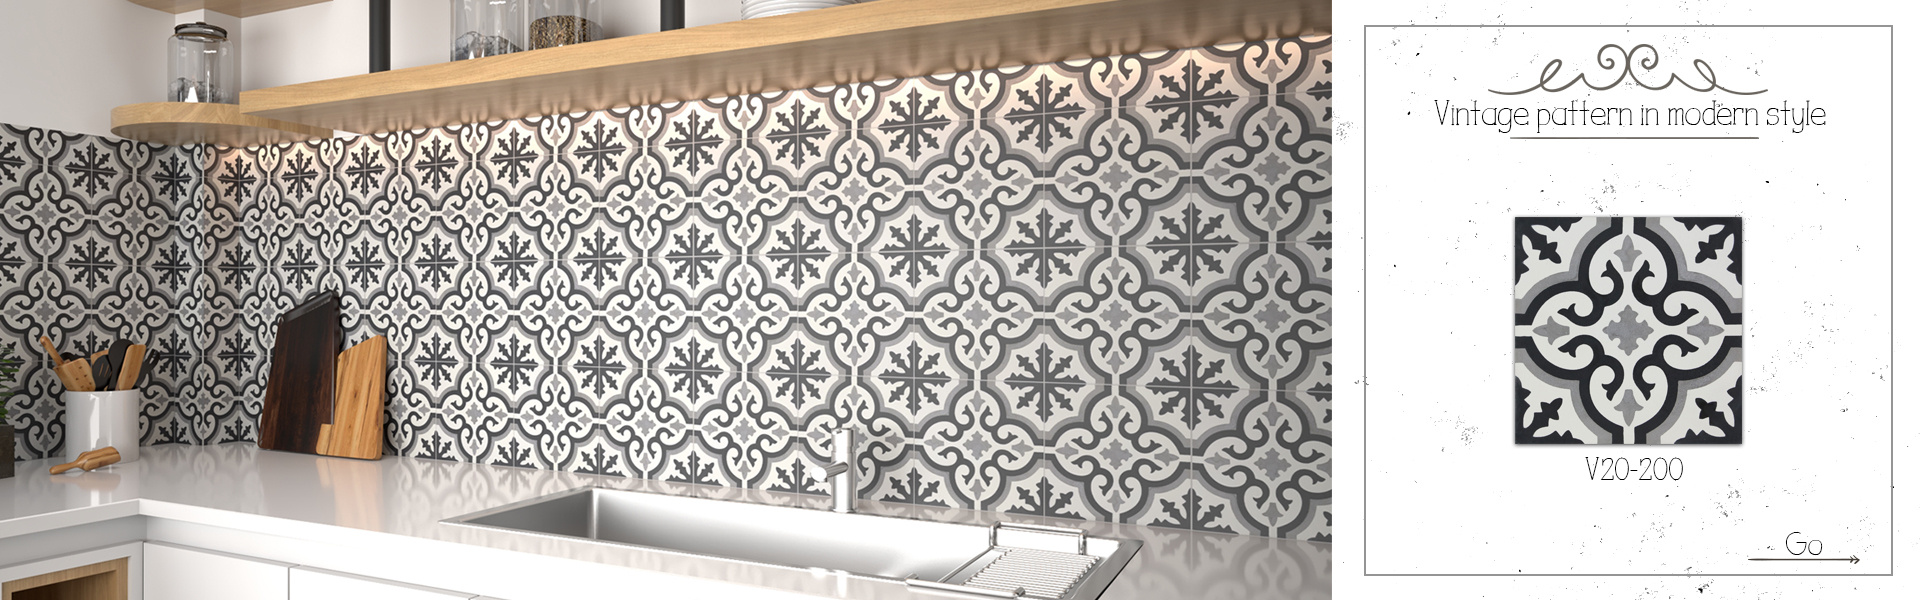 V20-200 Cement tile - Vintage pattern in modern style